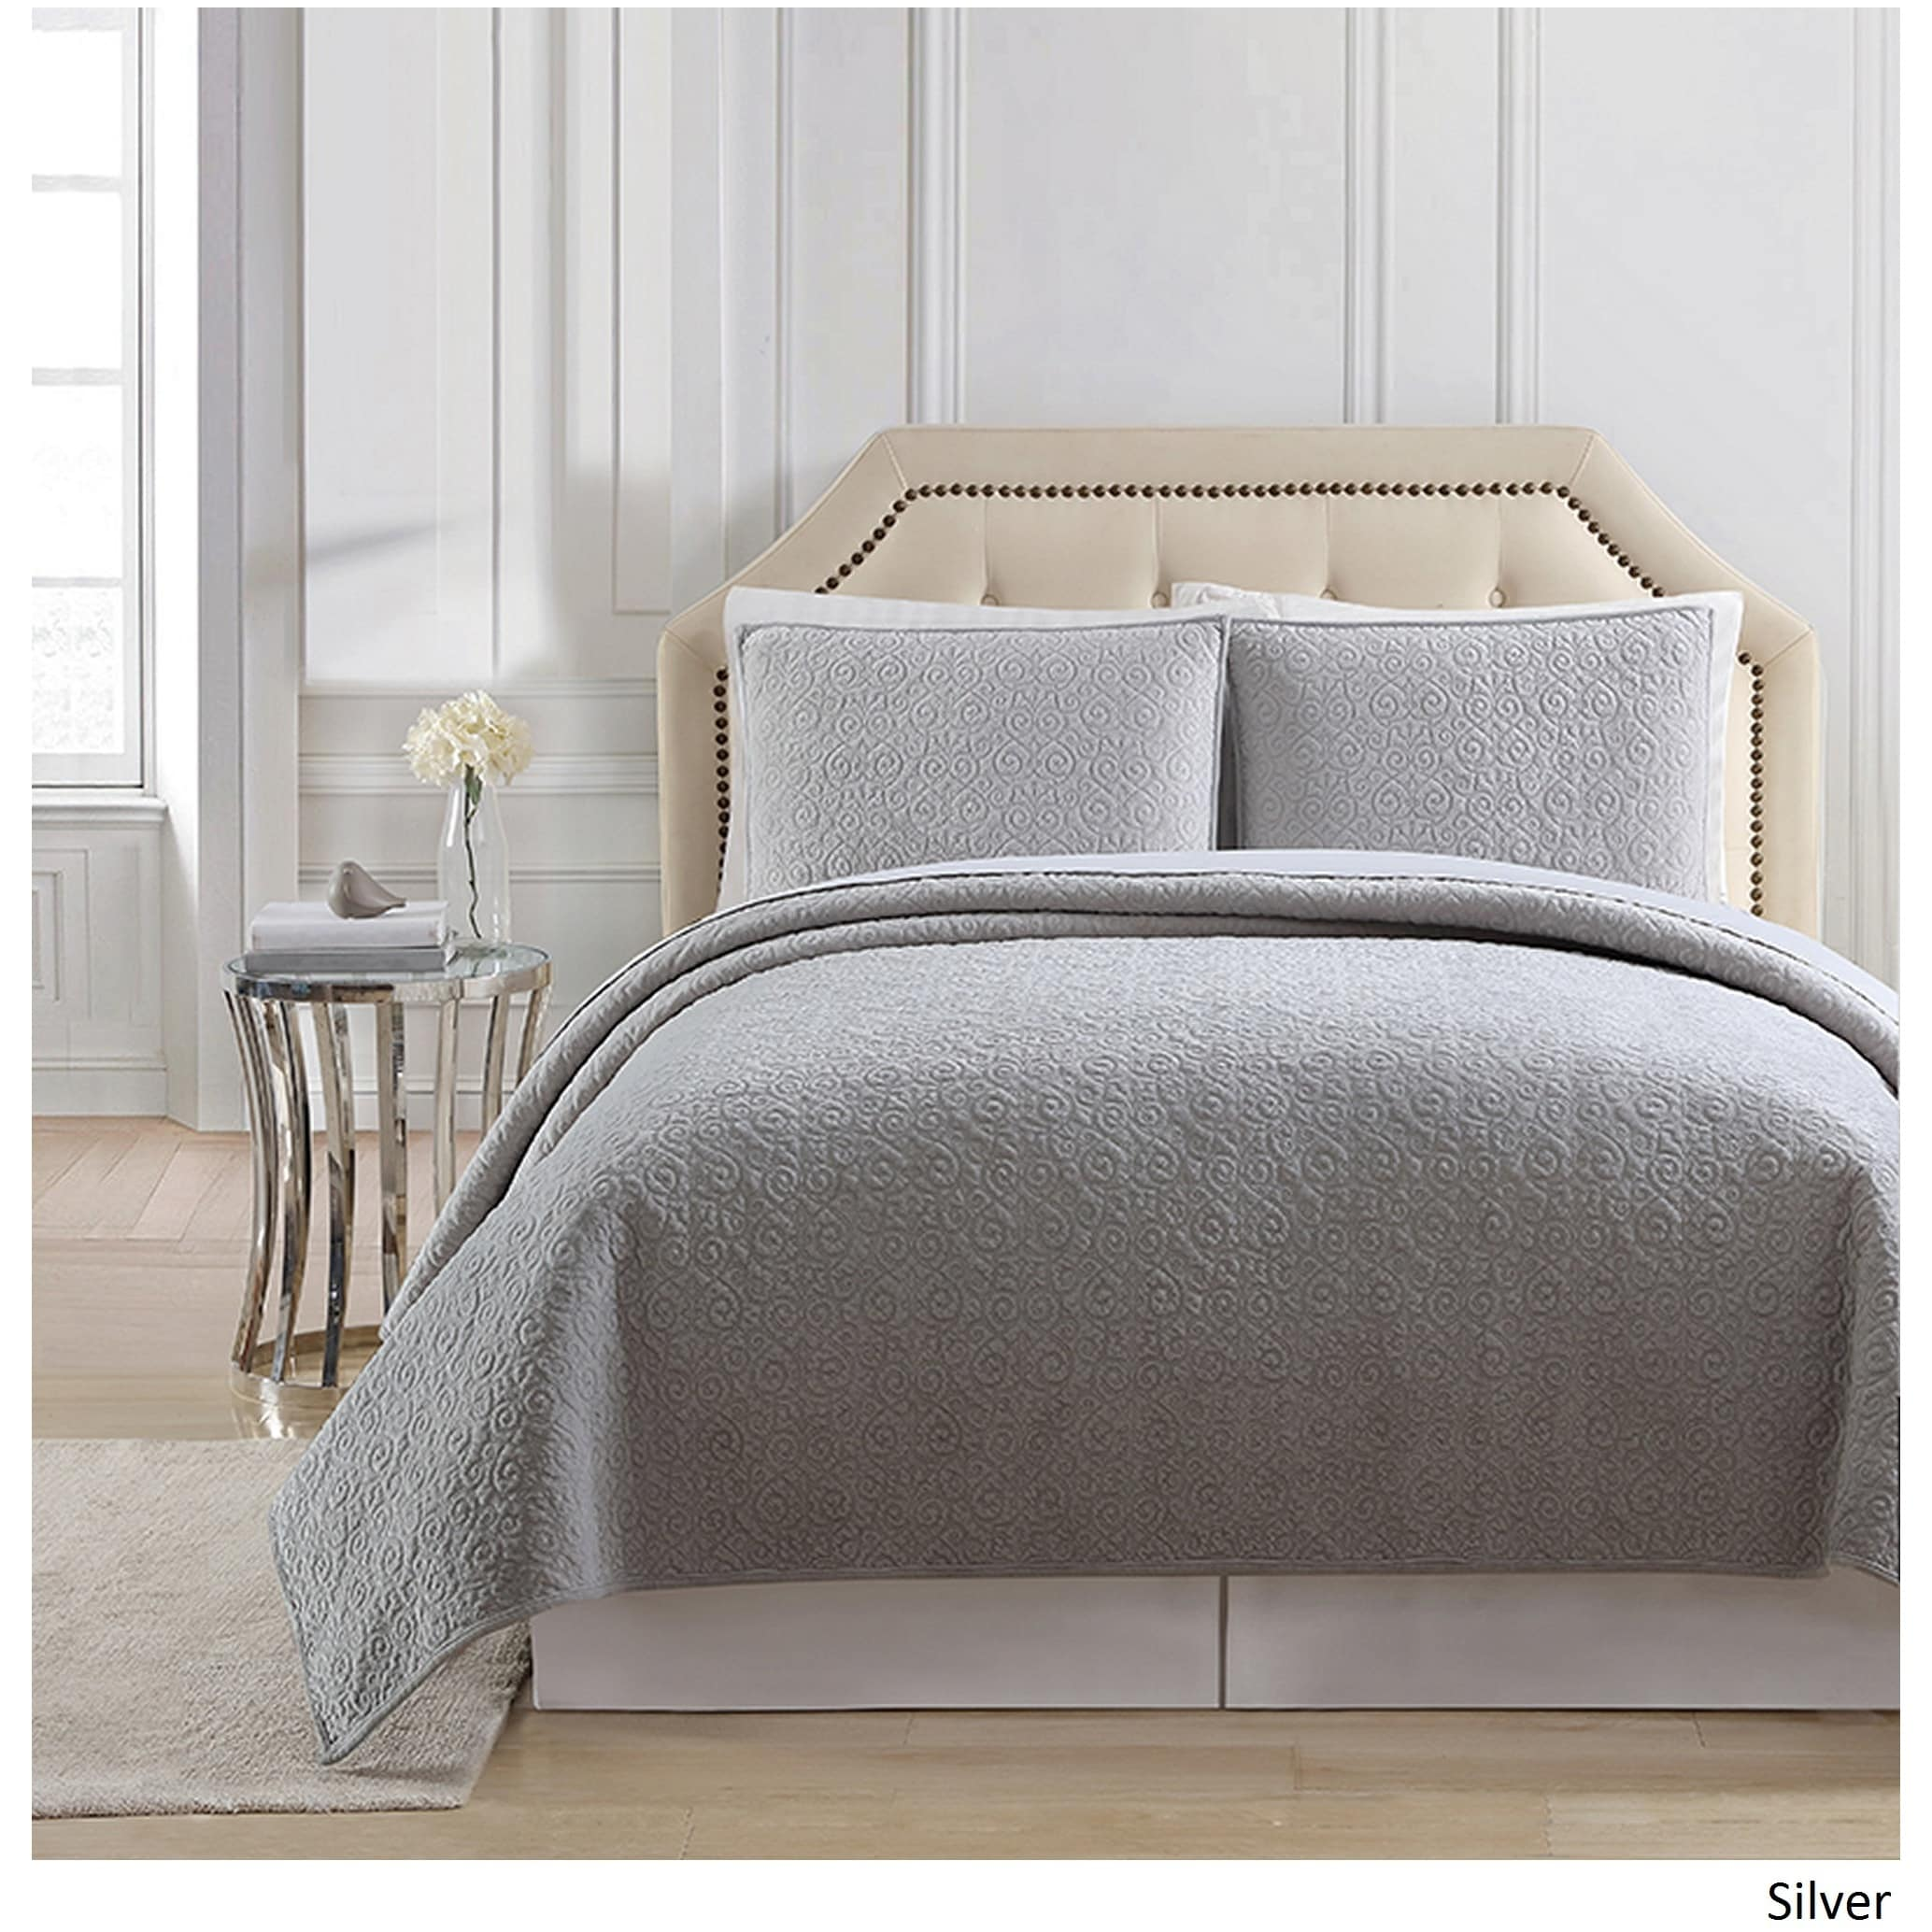 Charisma Regent Luxury Velvet Quilted Coverlet   On Sale   Free Shipping  Today   Overstock.com   24239738